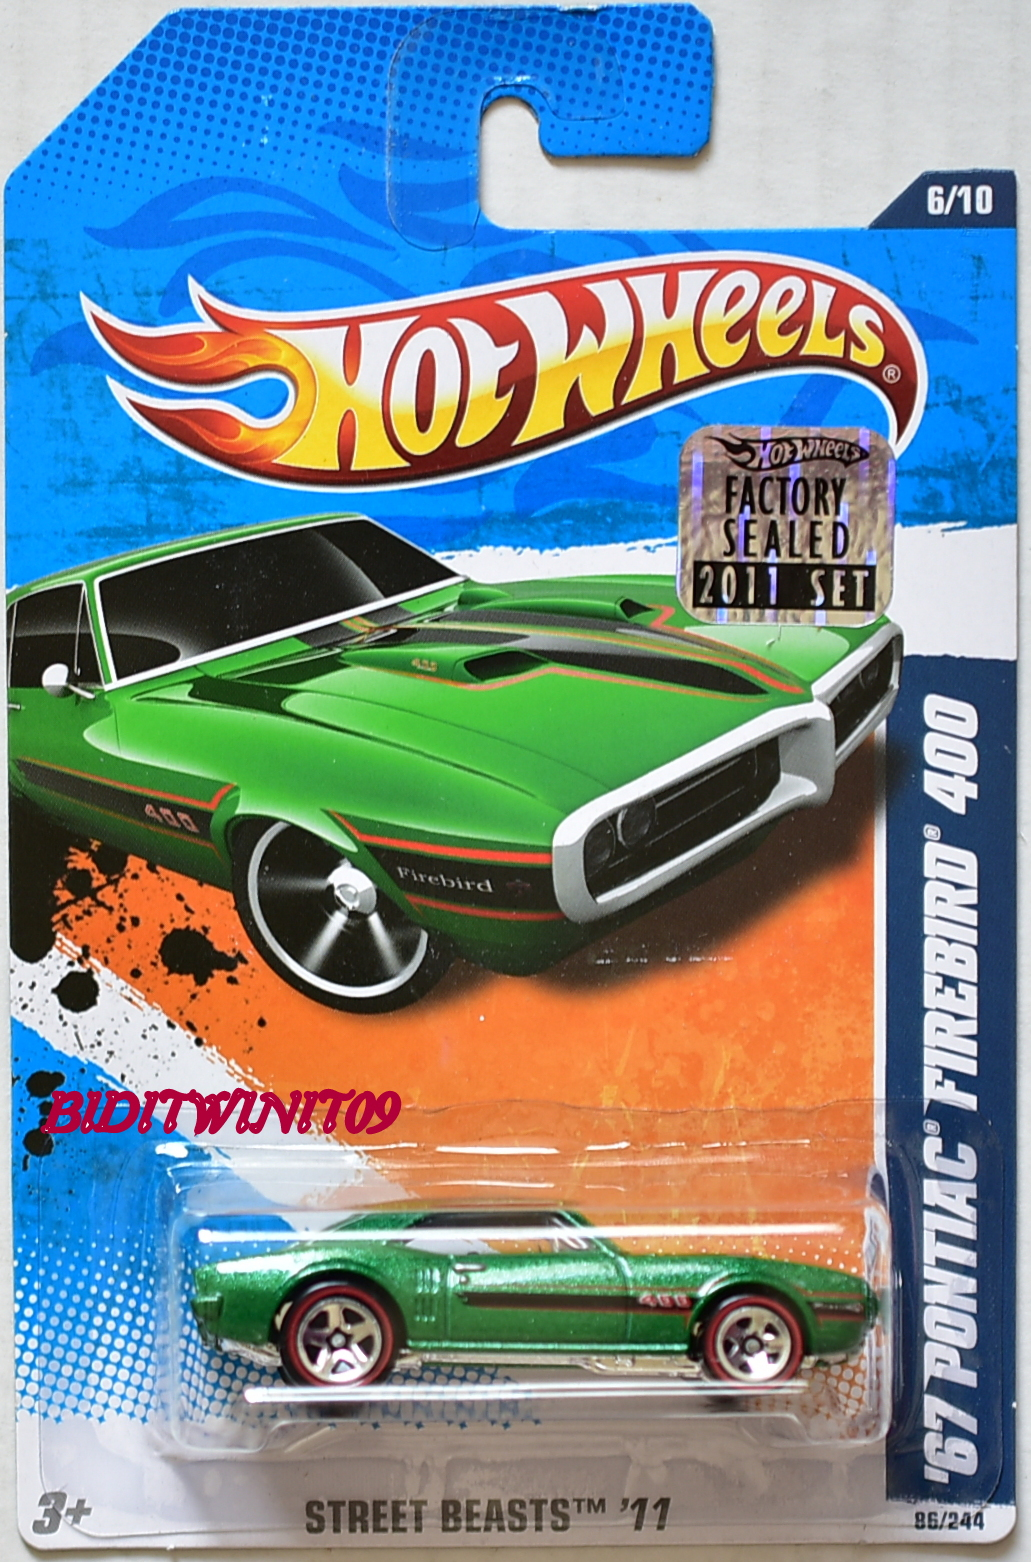 HOT WHEELS 2011 '67 PONTIAC FIREBIRD 400 W/ REDLINE TIRES FACTORY SEALED